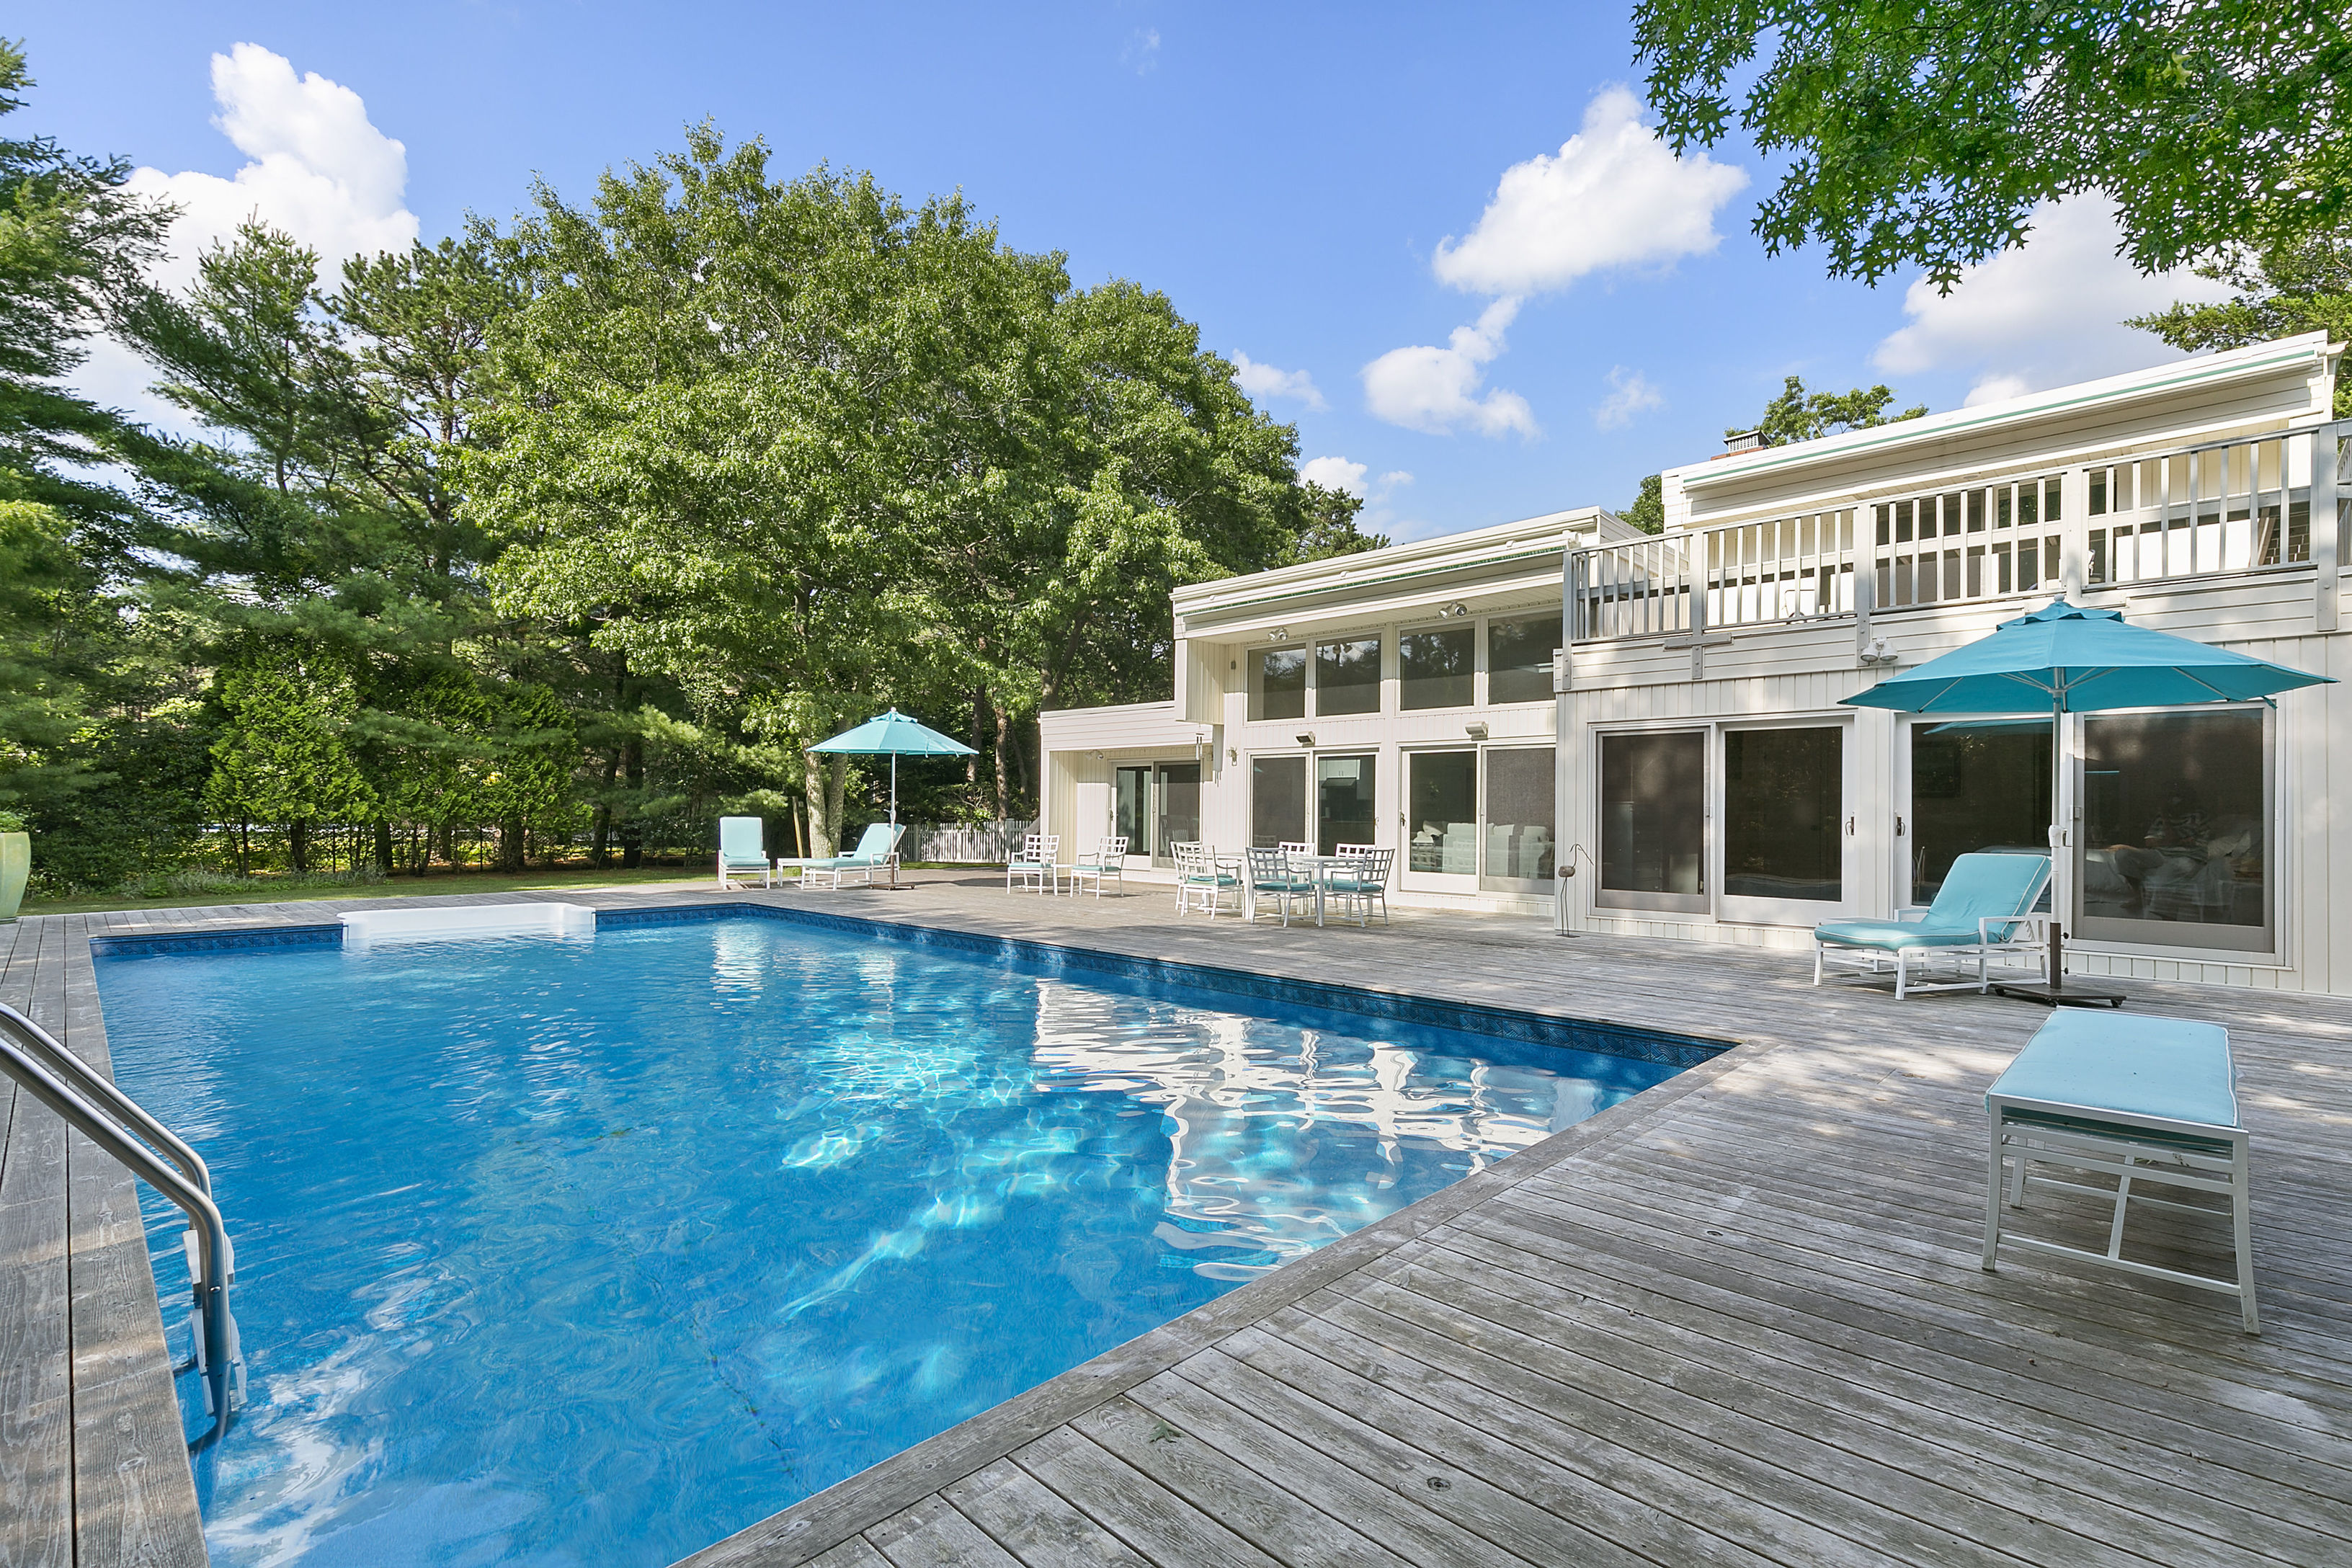 12 Blue Jay Way - East Quogue, New York